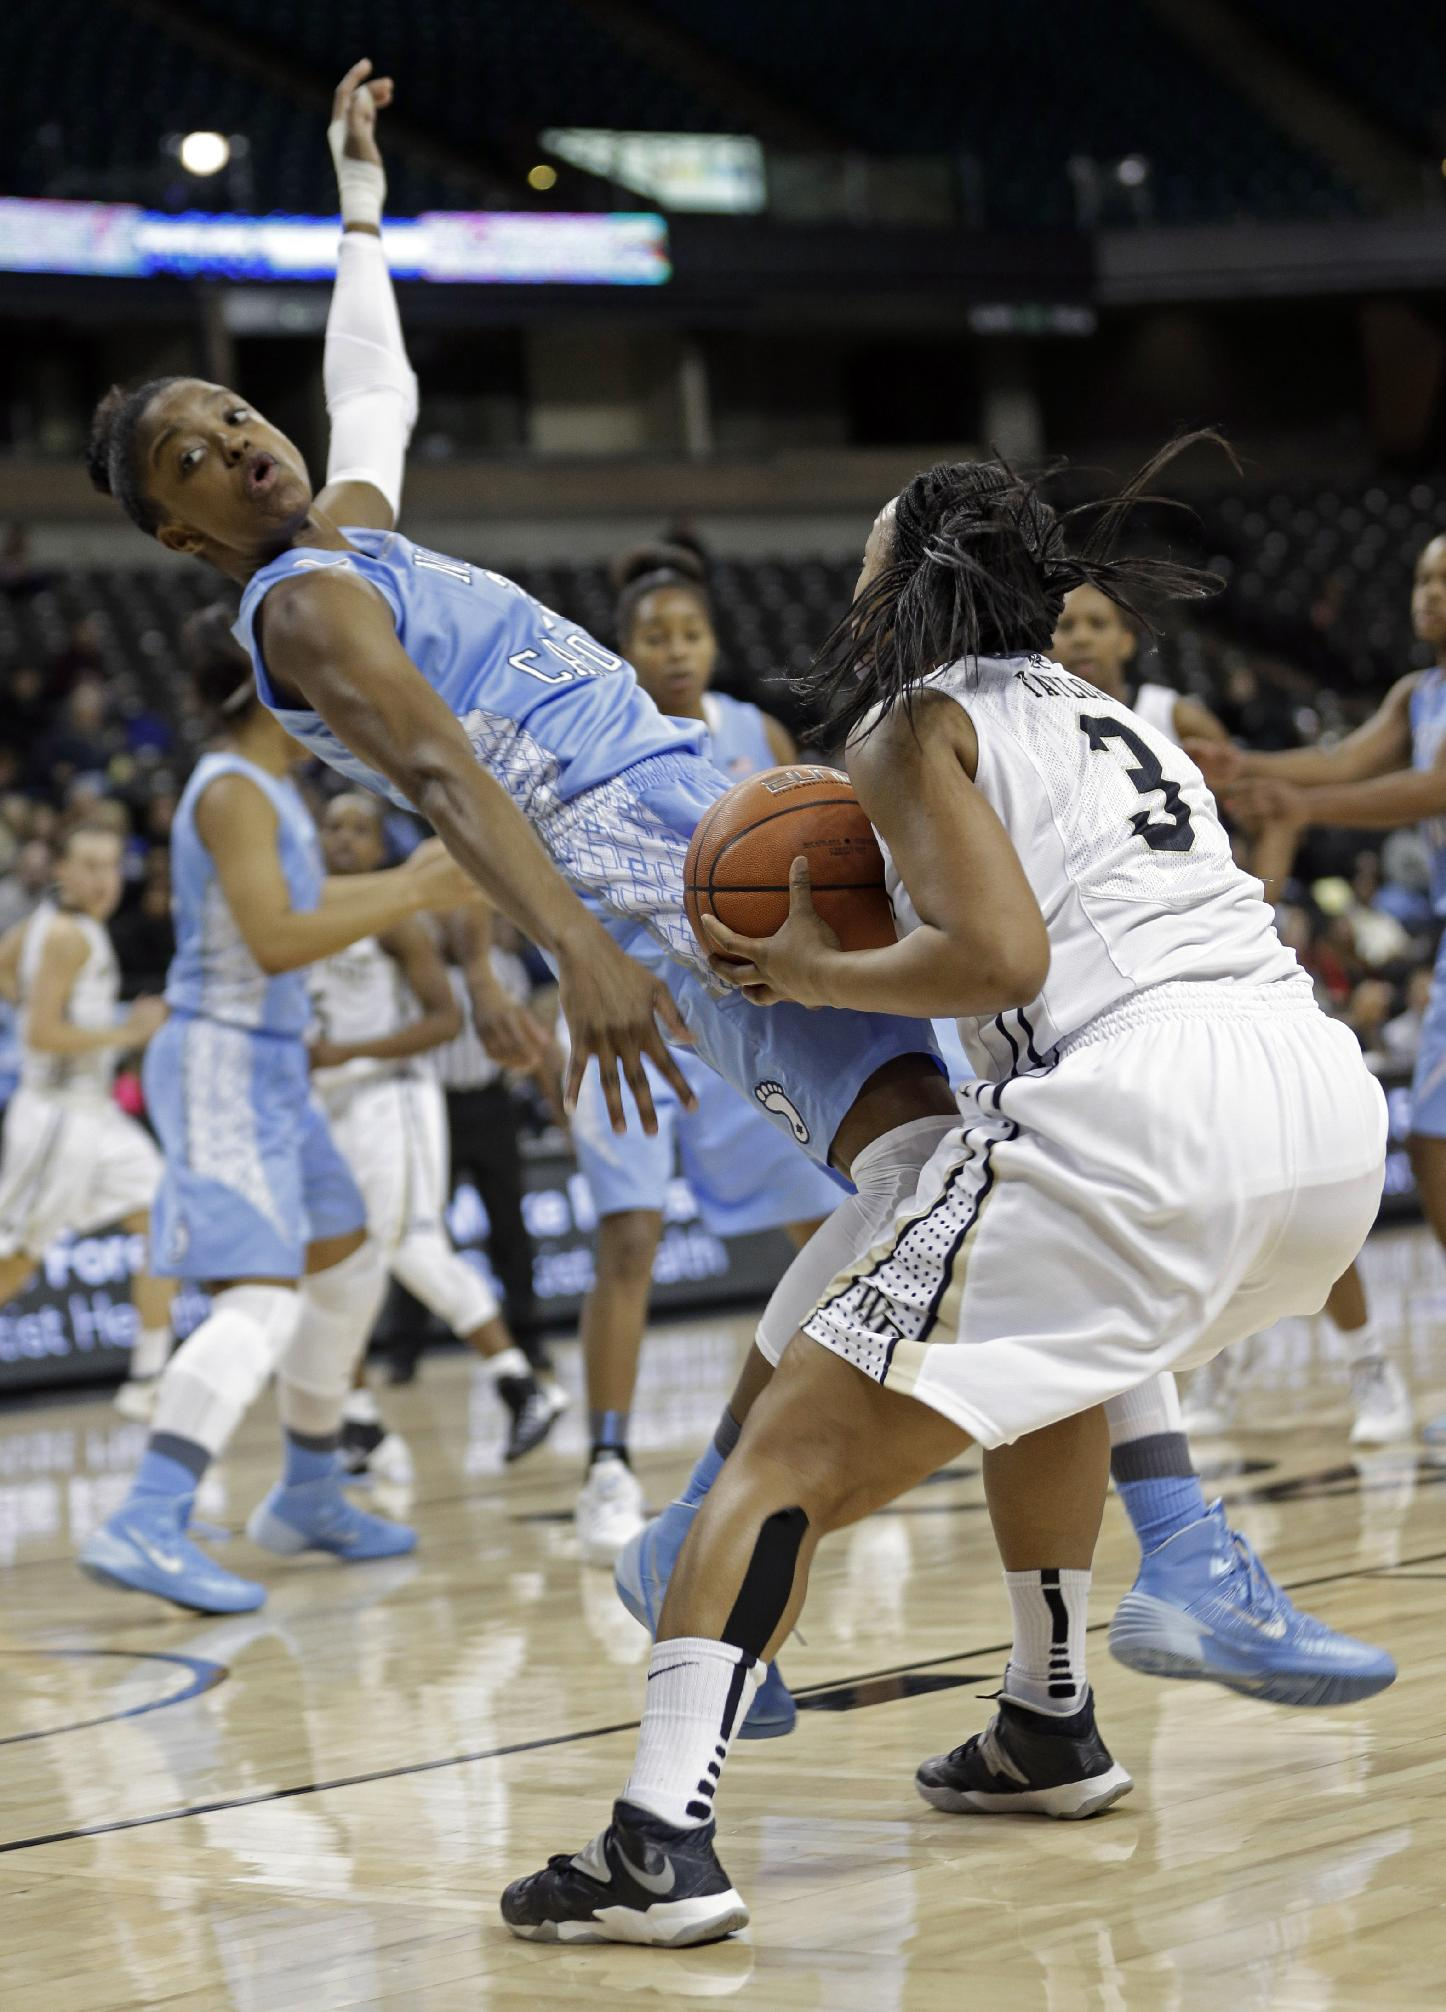 North Carolina's Diamond DeShields, left, is knocked down by Wake Forest's Ataijah Taylor, right, during the first half of an NCAA college basketball game in Winston-Salem, N.C., Thursday, Jan. 23, 2014. Taylor was charged with a foul